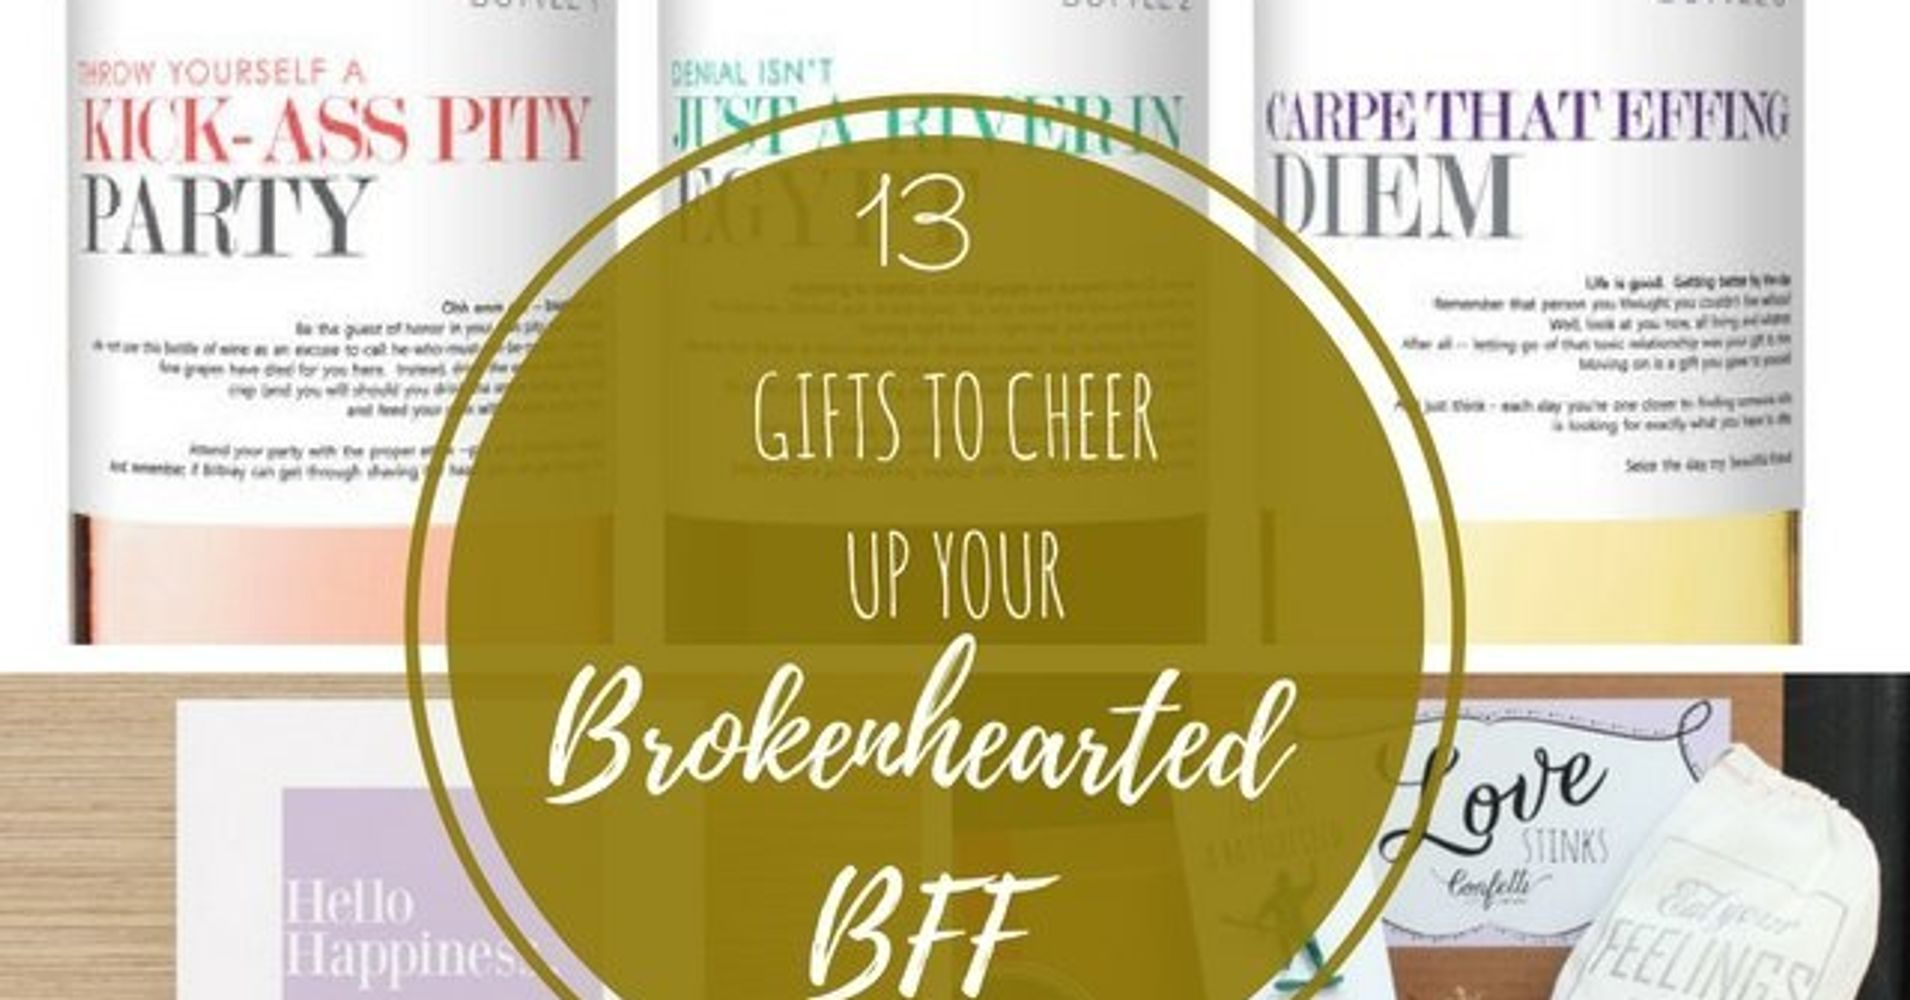 13 gifts to cheer up a brokenhearted bff huffpost life